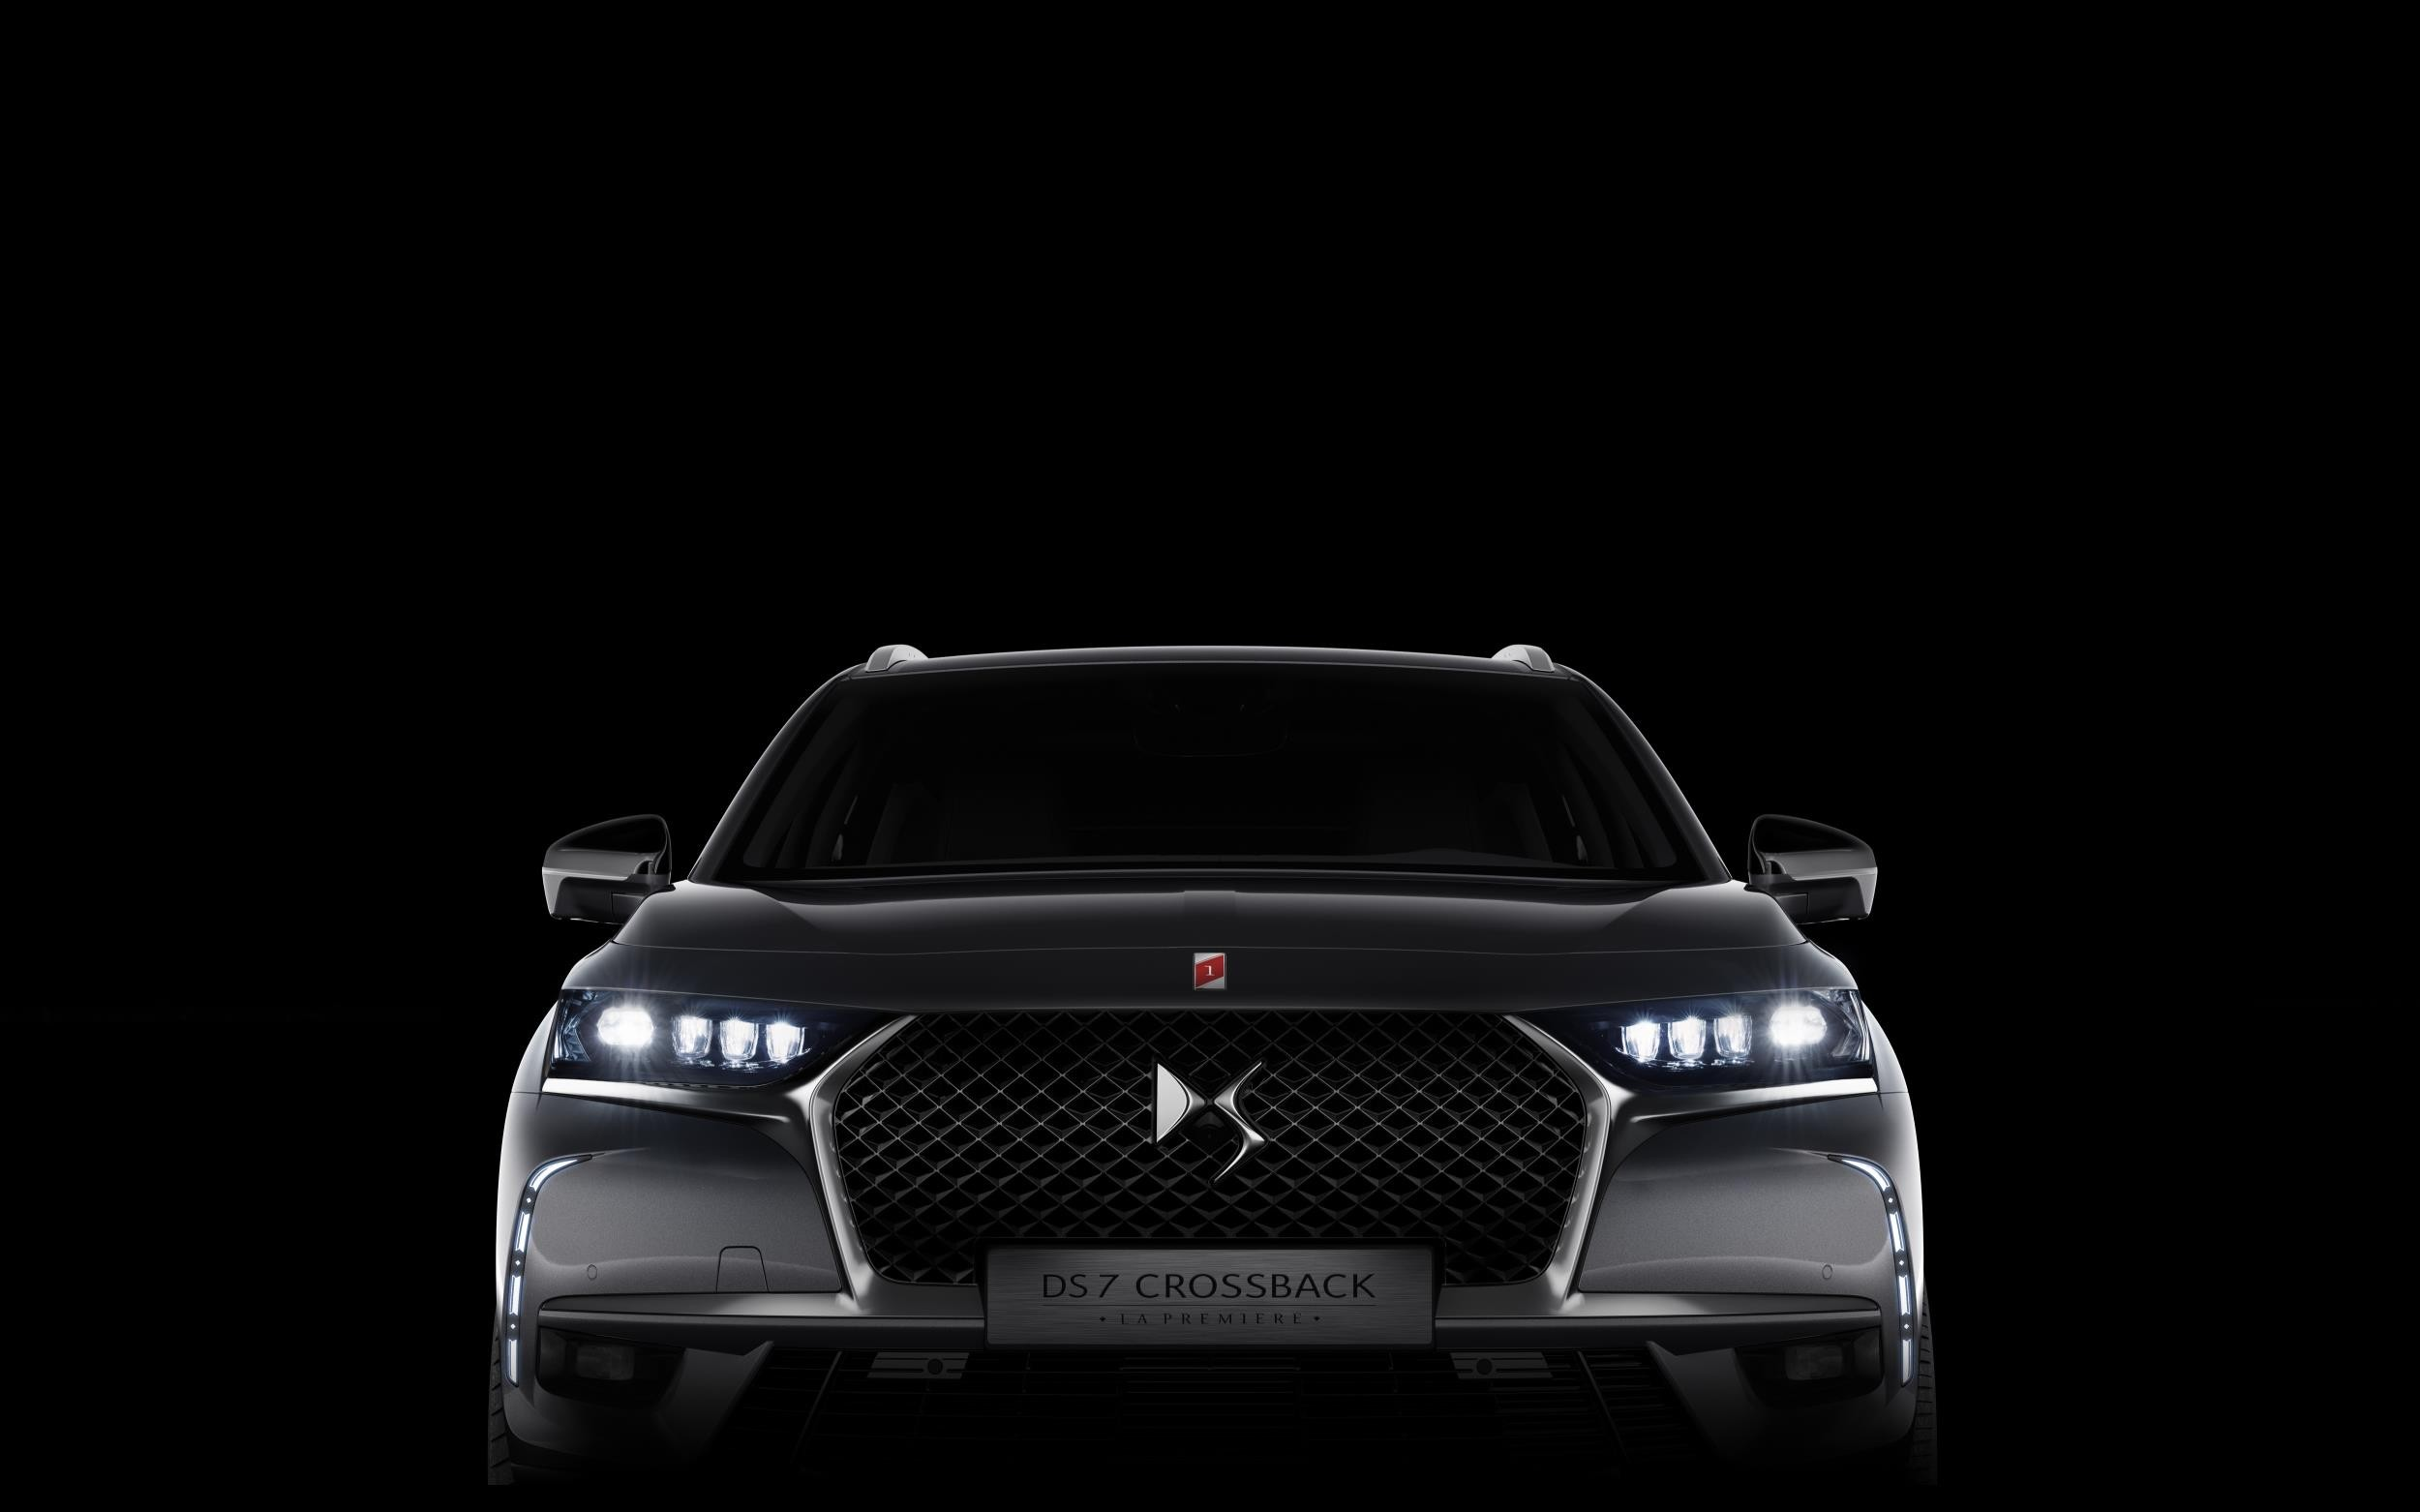 ds 7 crossback now available in la premi re limited edition form autoevolution. Black Bedroom Furniture Sets. Home Design Ideas